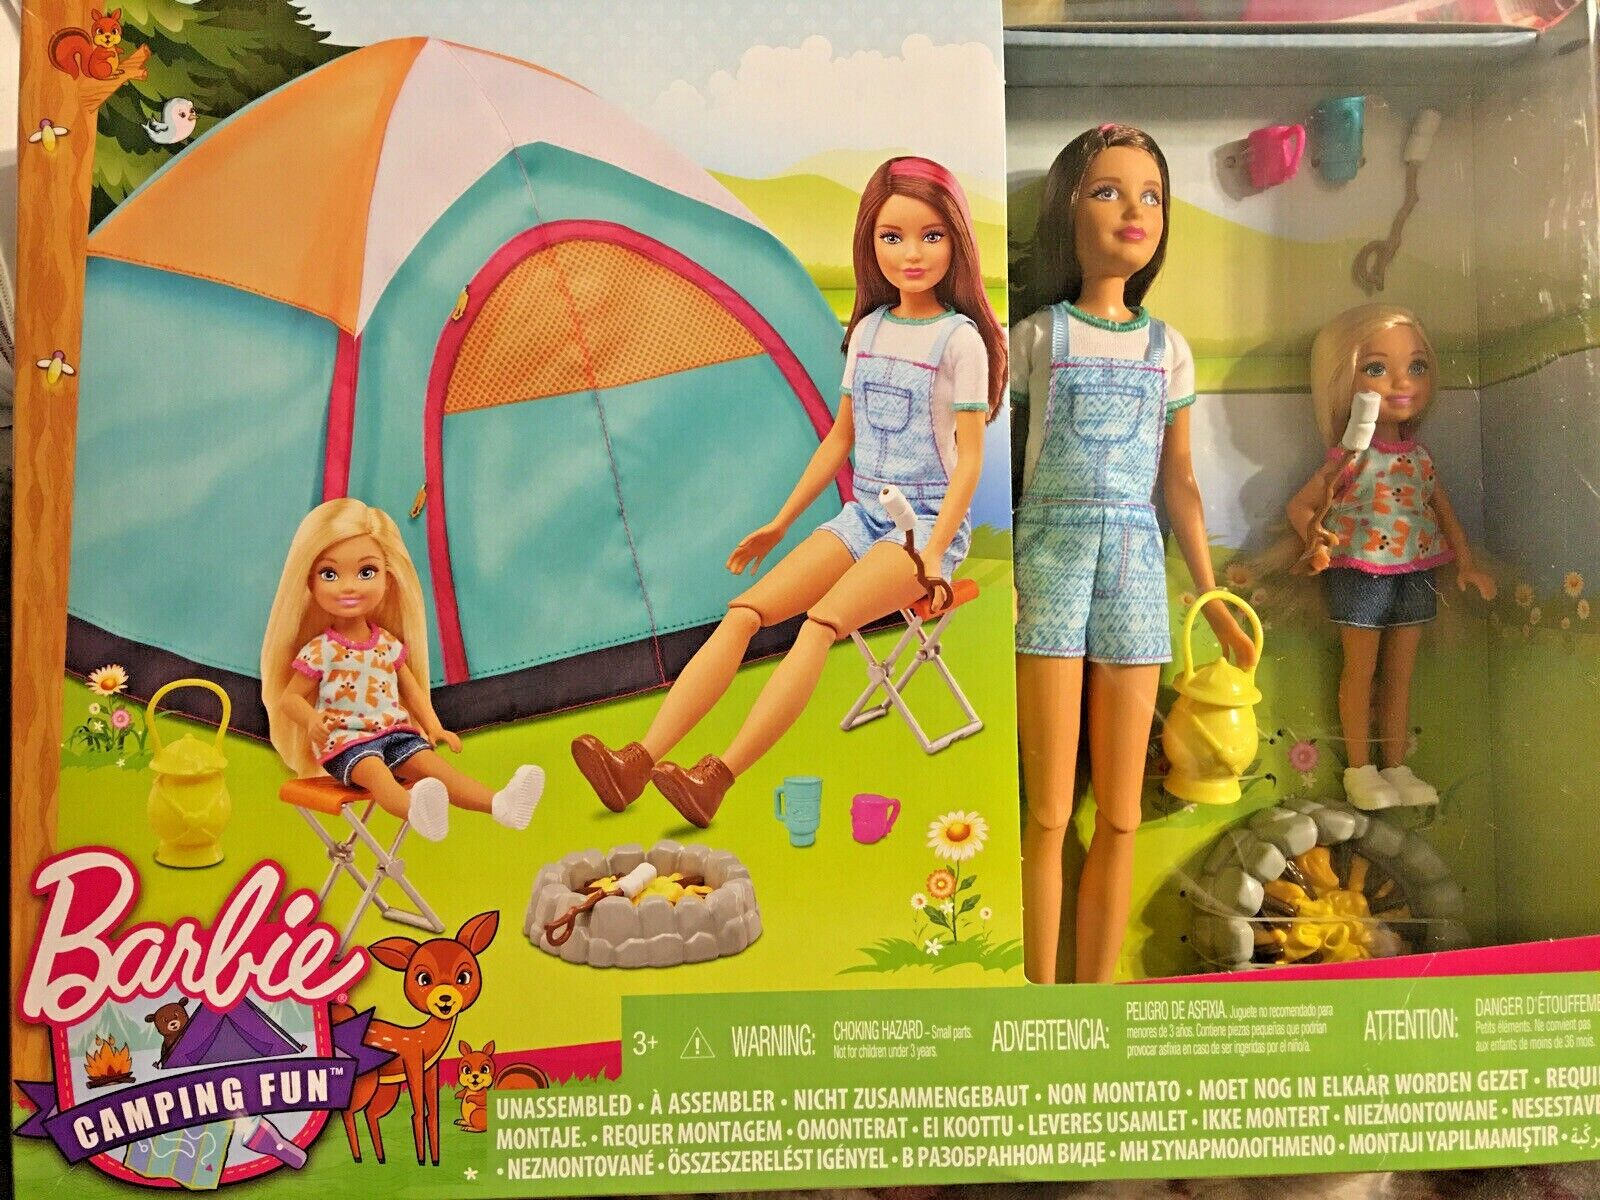 Barbie Camping Fun Tent with 2 dolls Skipper and Chelsea plus accessories New